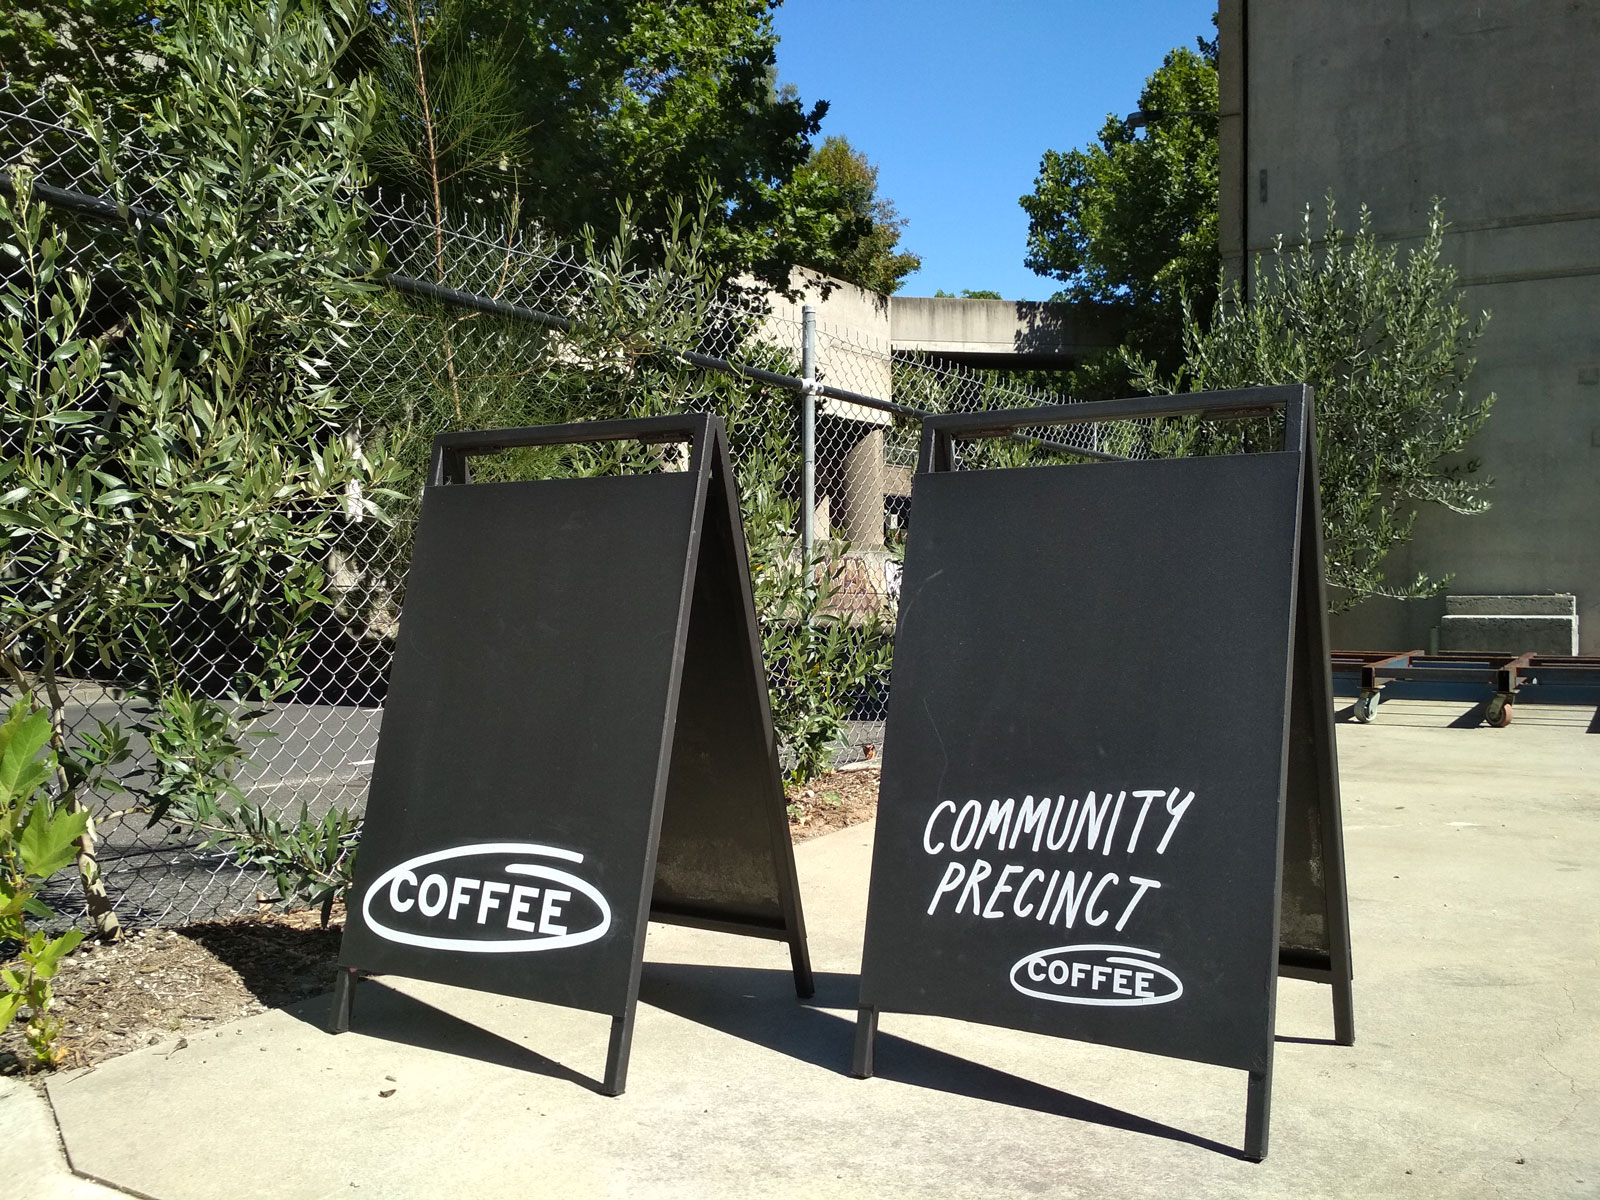 Community_Precinct_Coffee_Southbank_Arts-Precinct-05.jpg